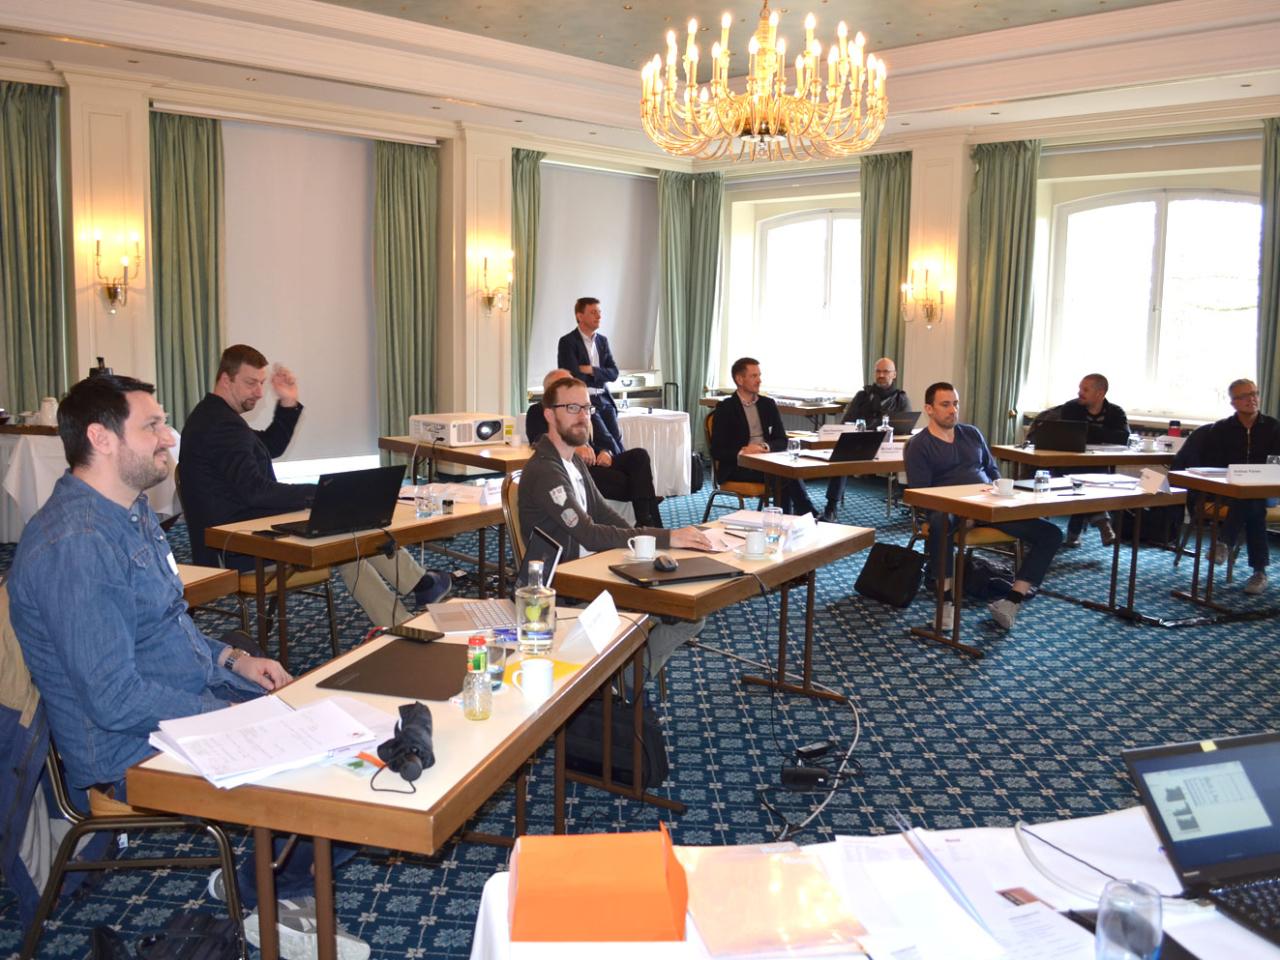 Pictures ICC courses • IBCS - International Business Communication